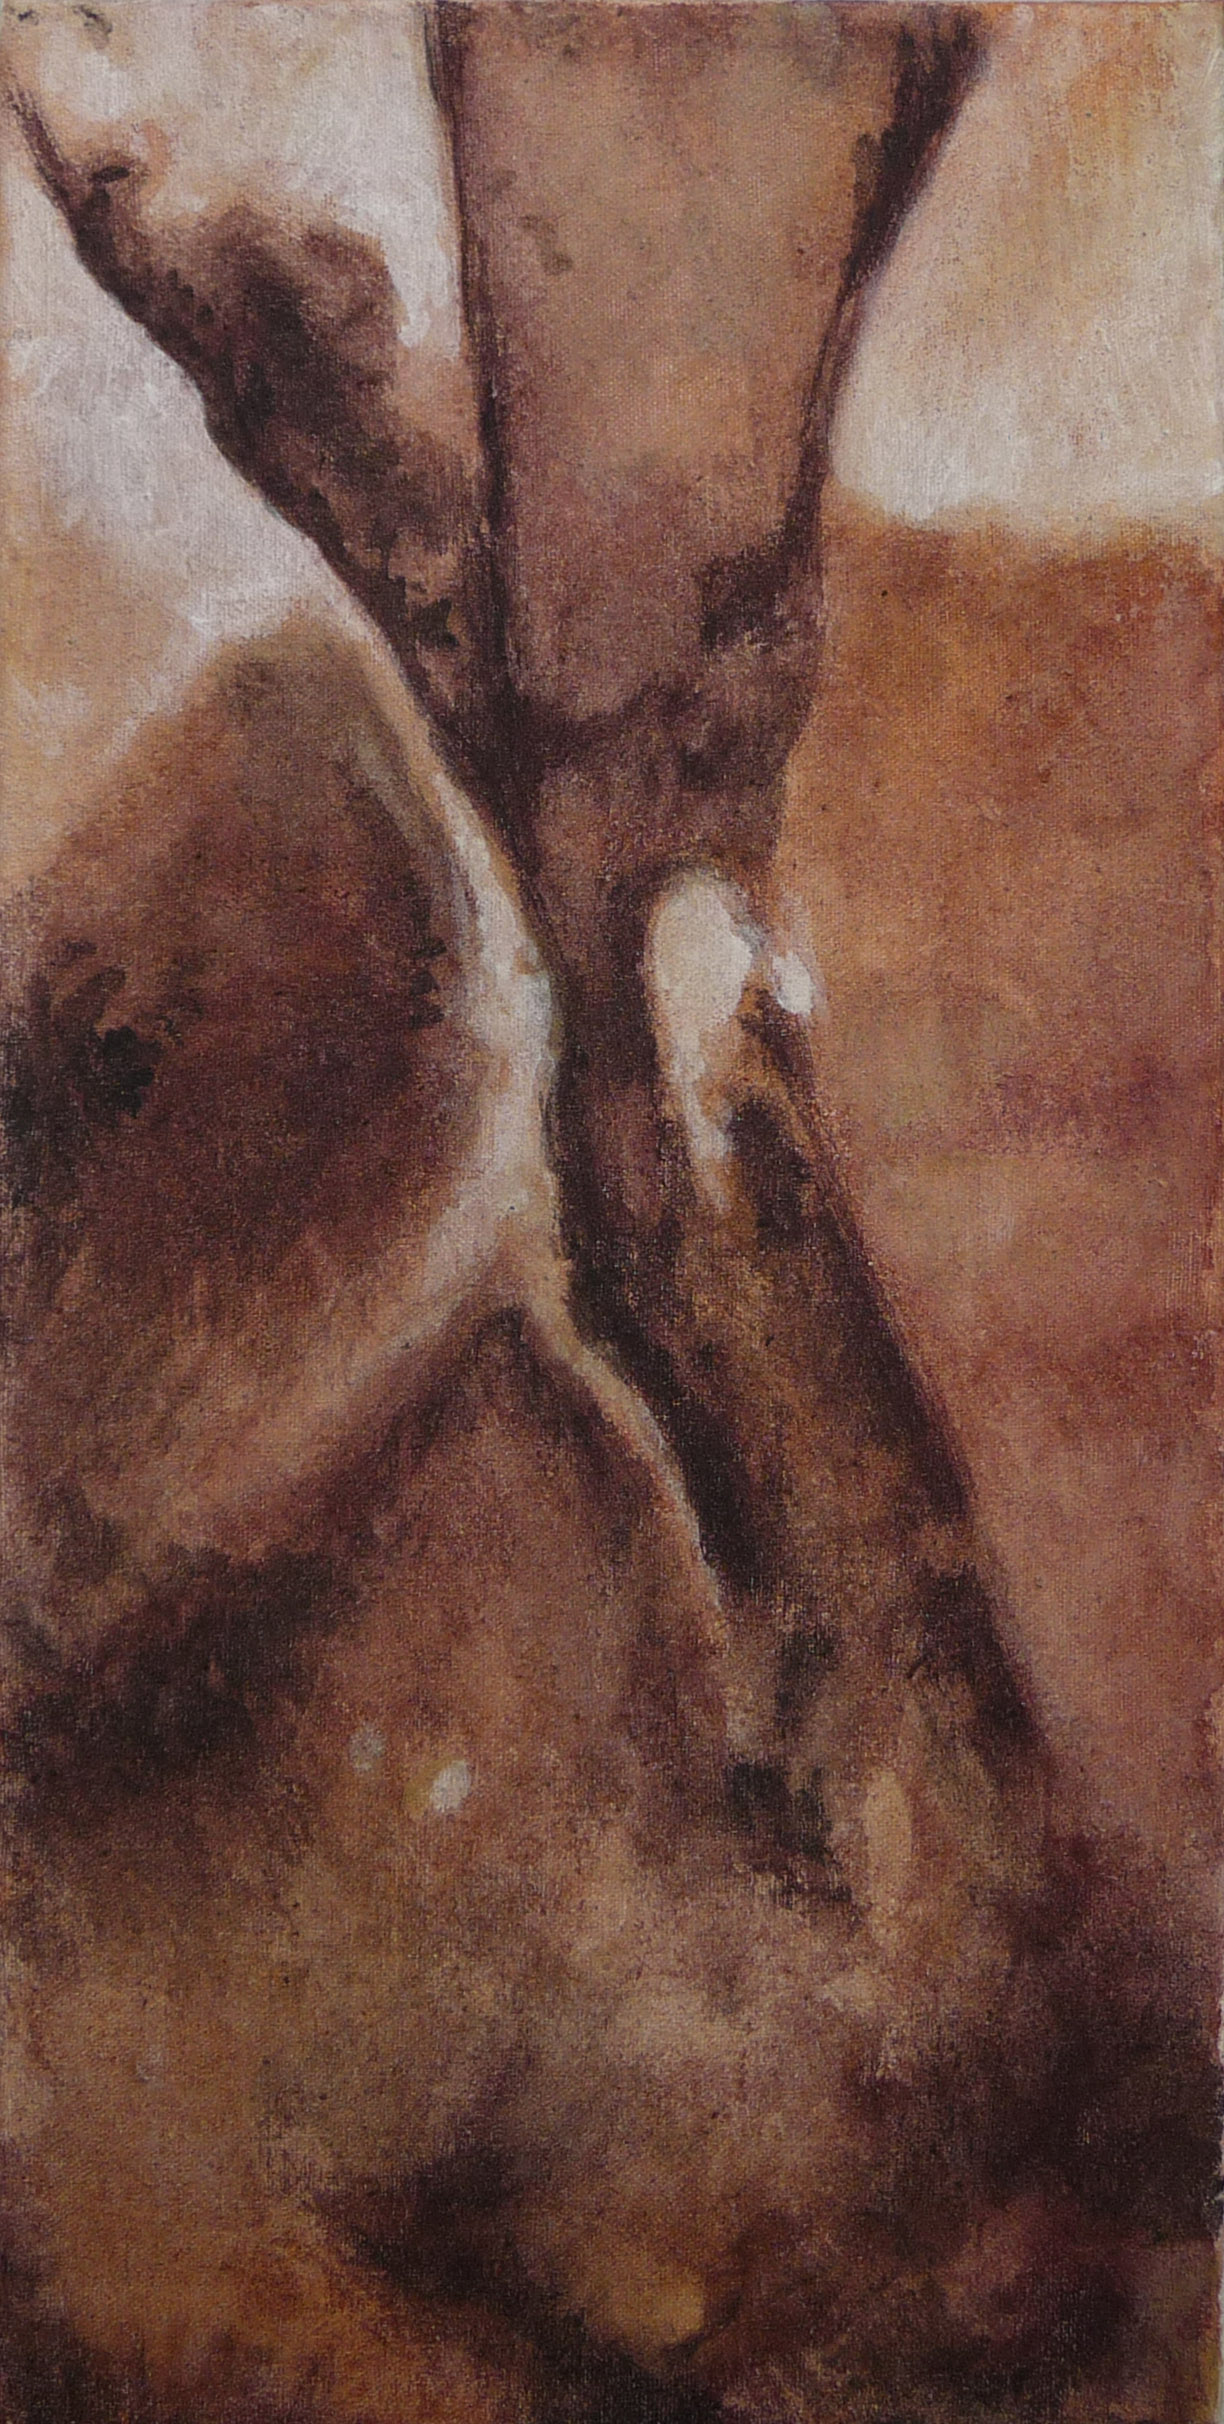 <p><strong>Colour study 325 Euro</strong><br />Punic wax, 20 x 40 cm</p>